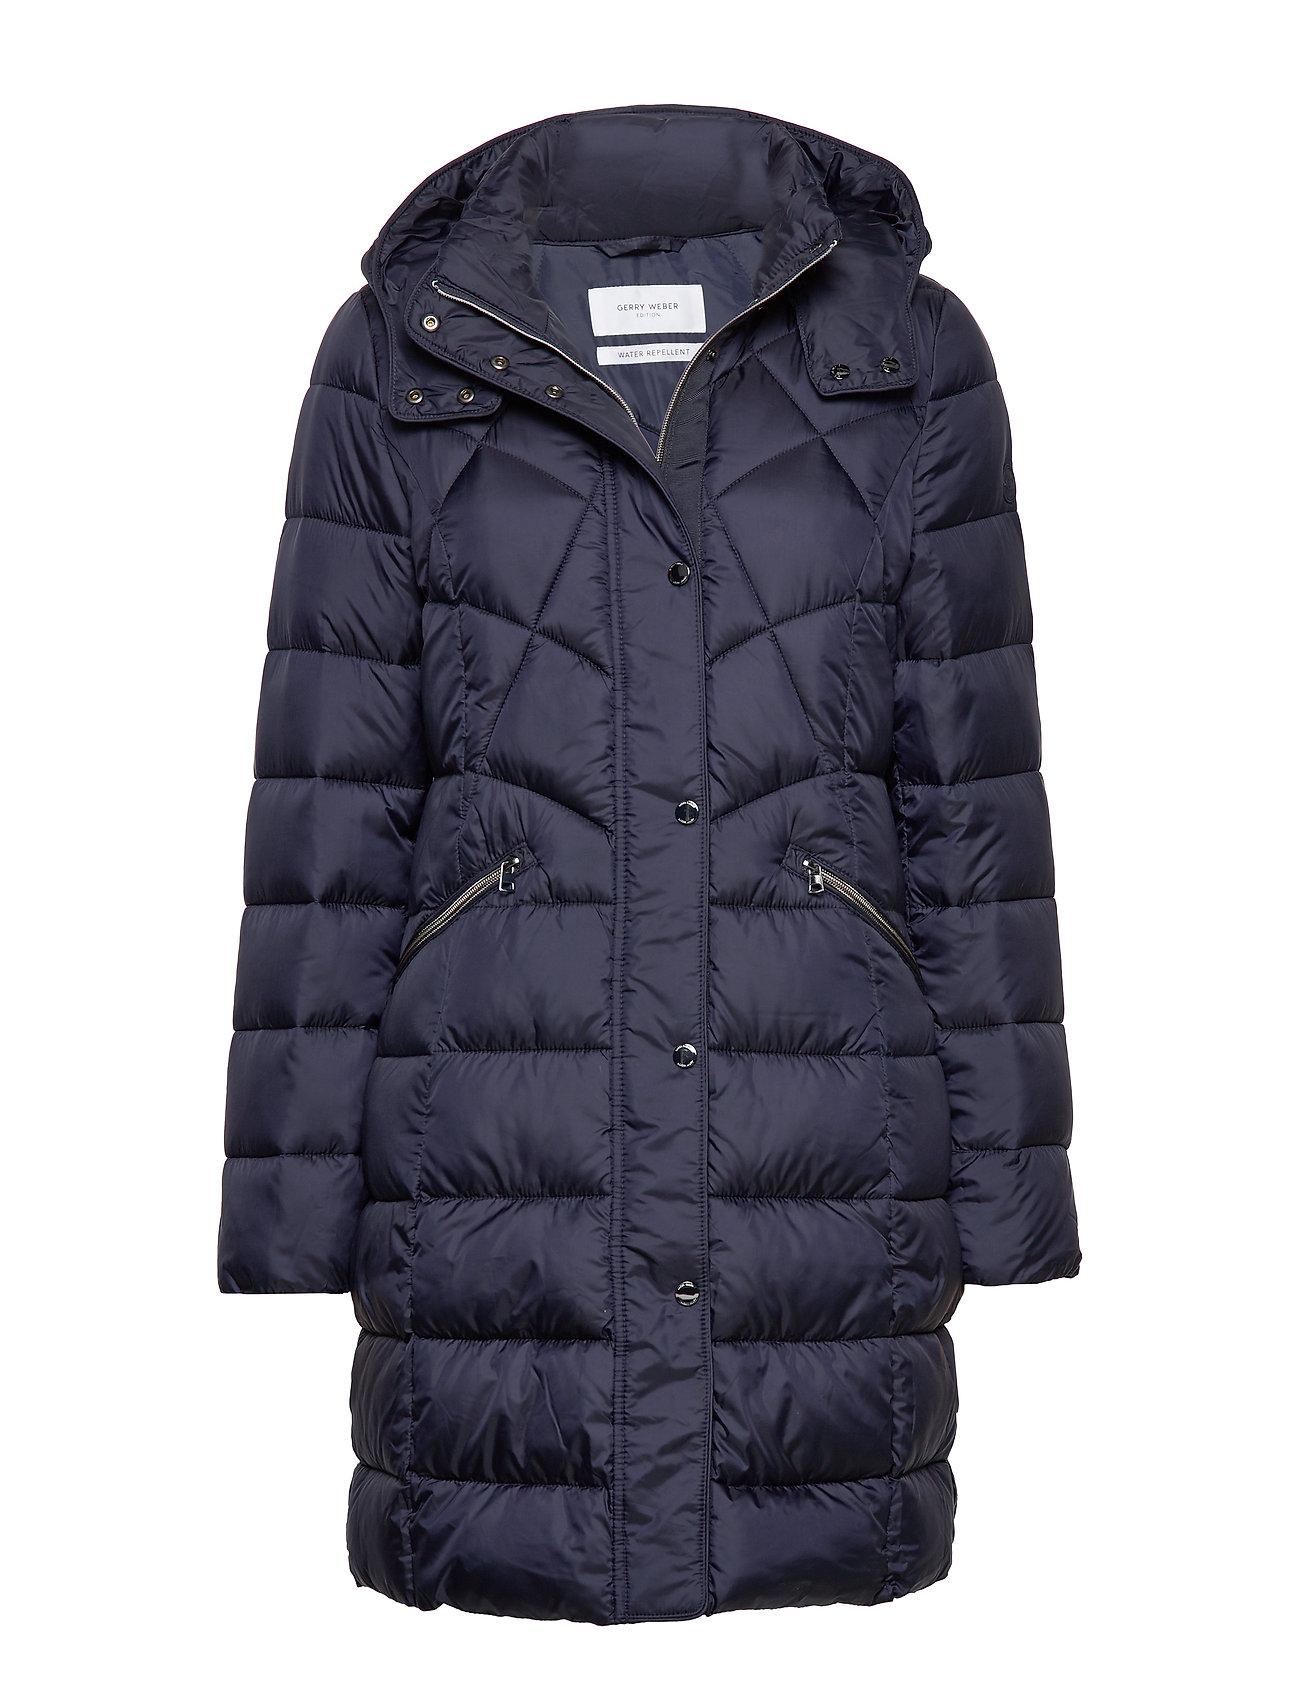 Gerry Weber Edition OUTDOOR JACKET NO WO - NAVY BLUE